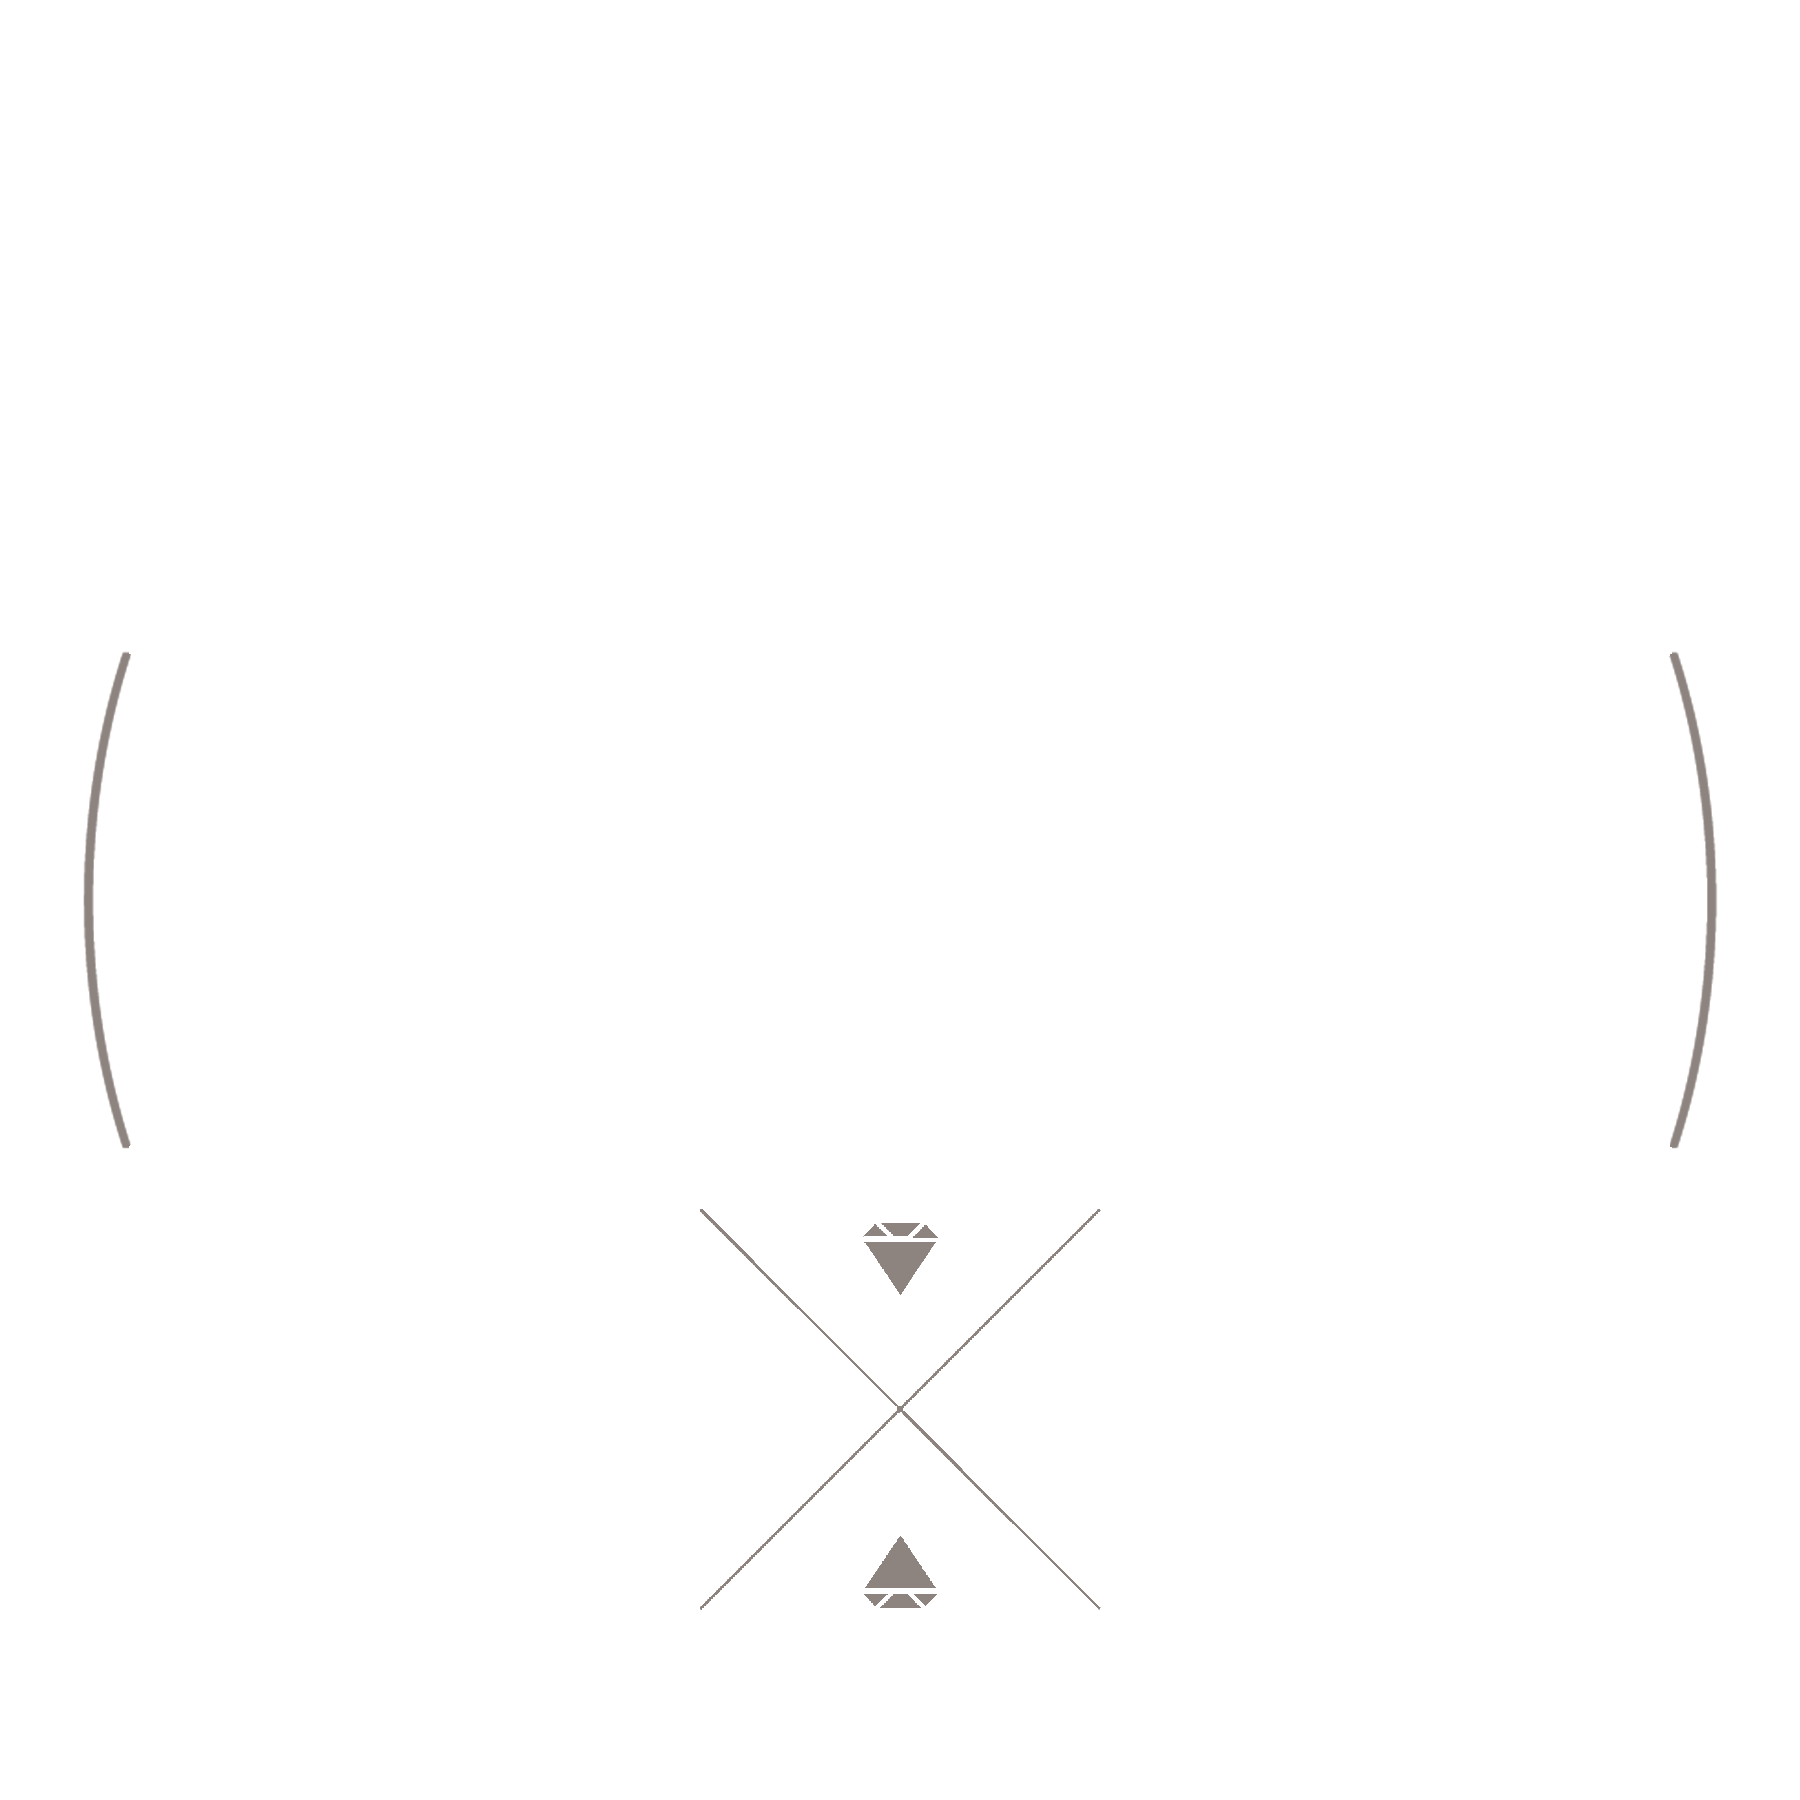 nativecloud.dev